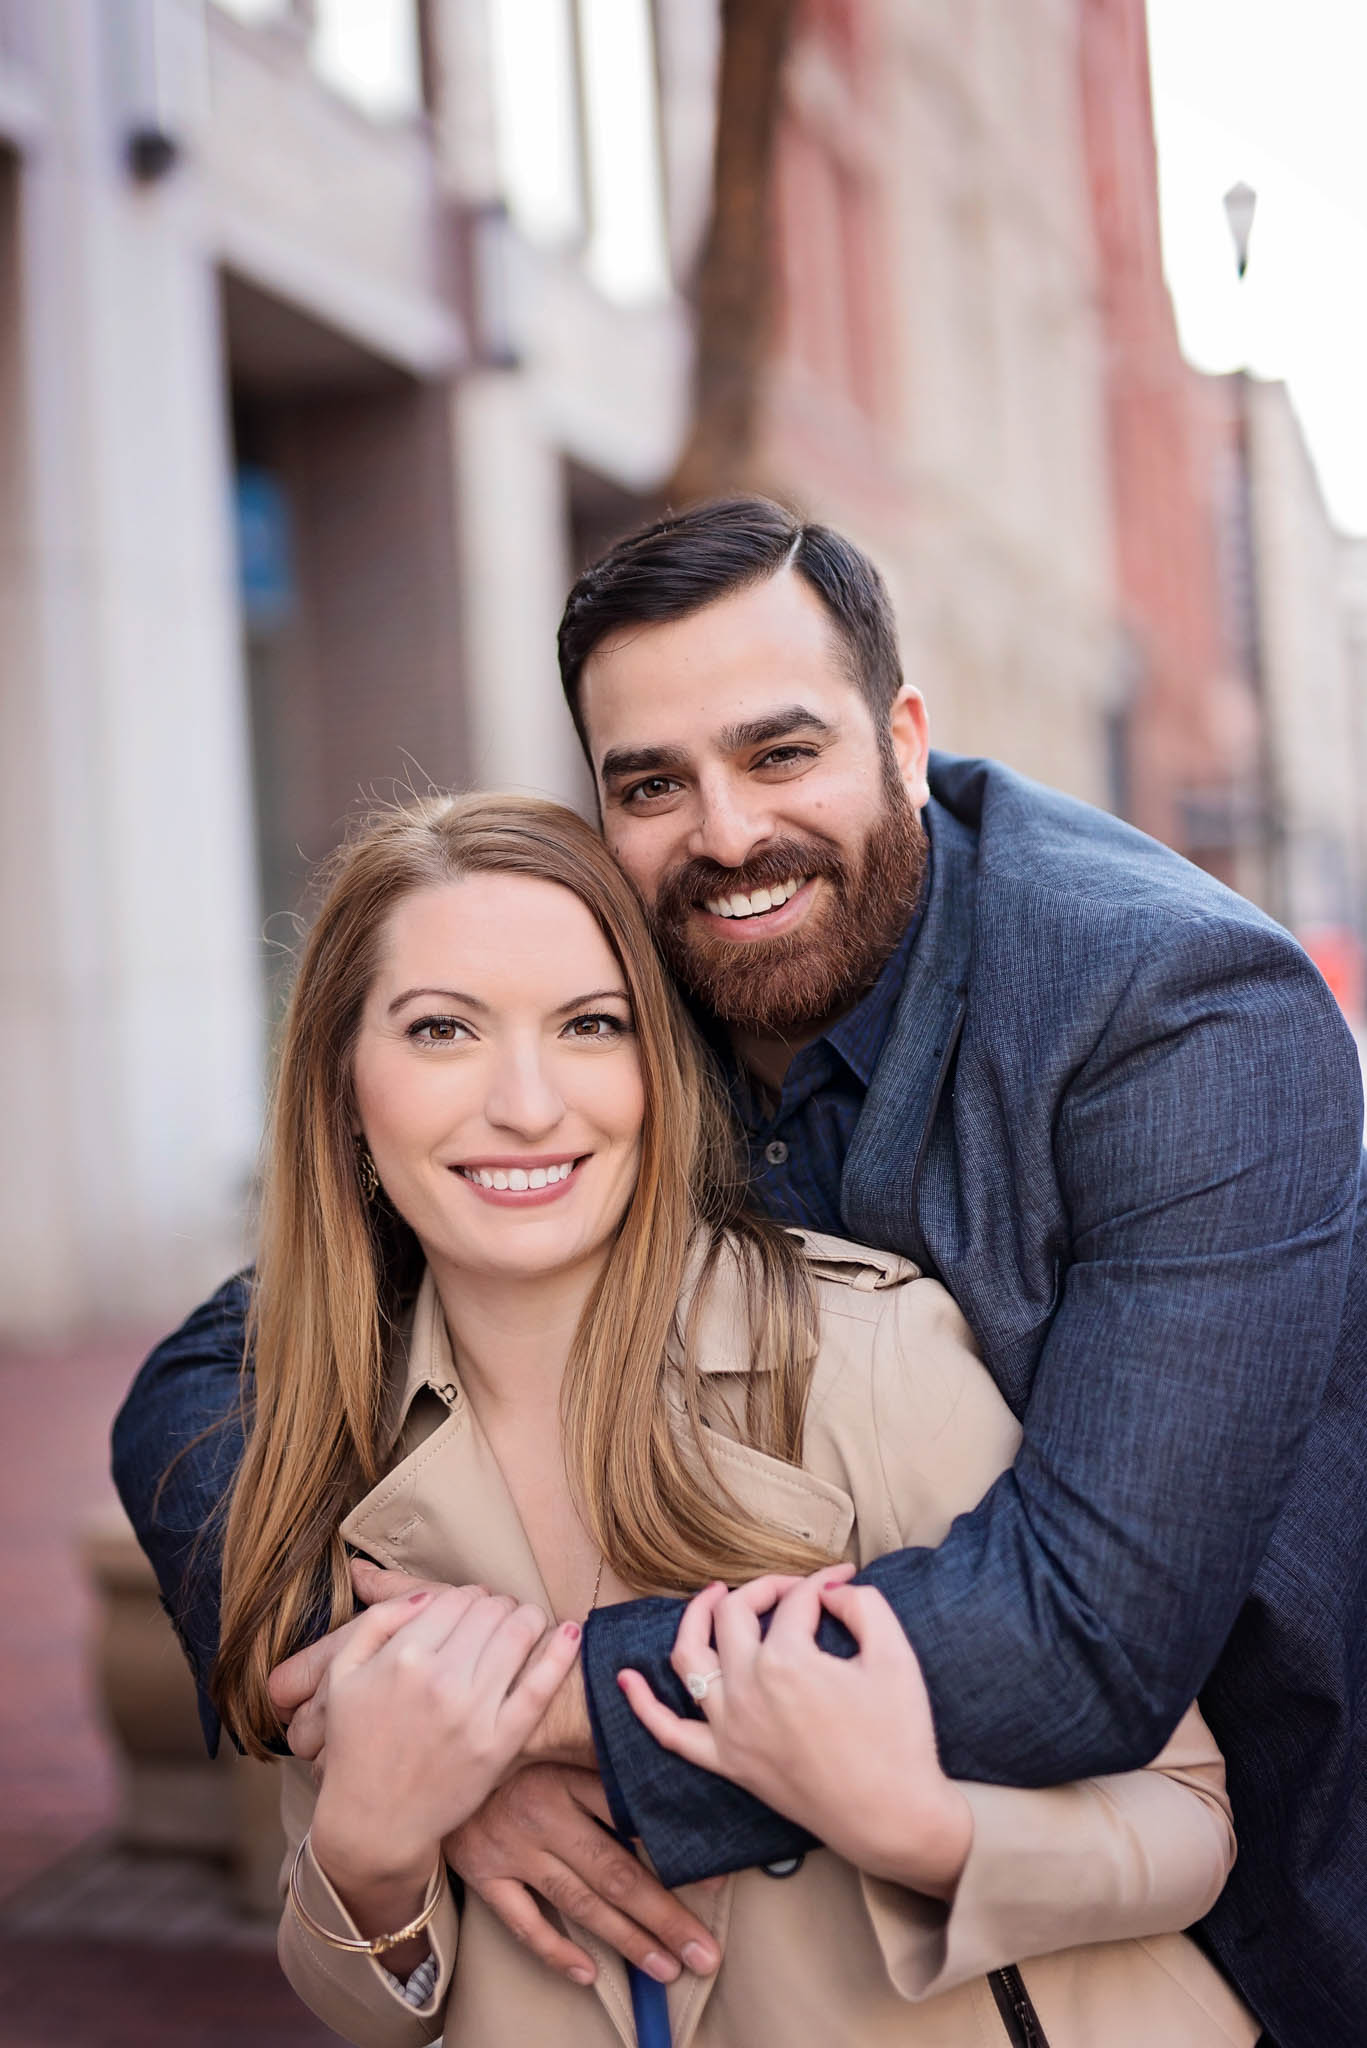 Couples-New-Albany-Indiana-Louisville-Engagement-Photography-11